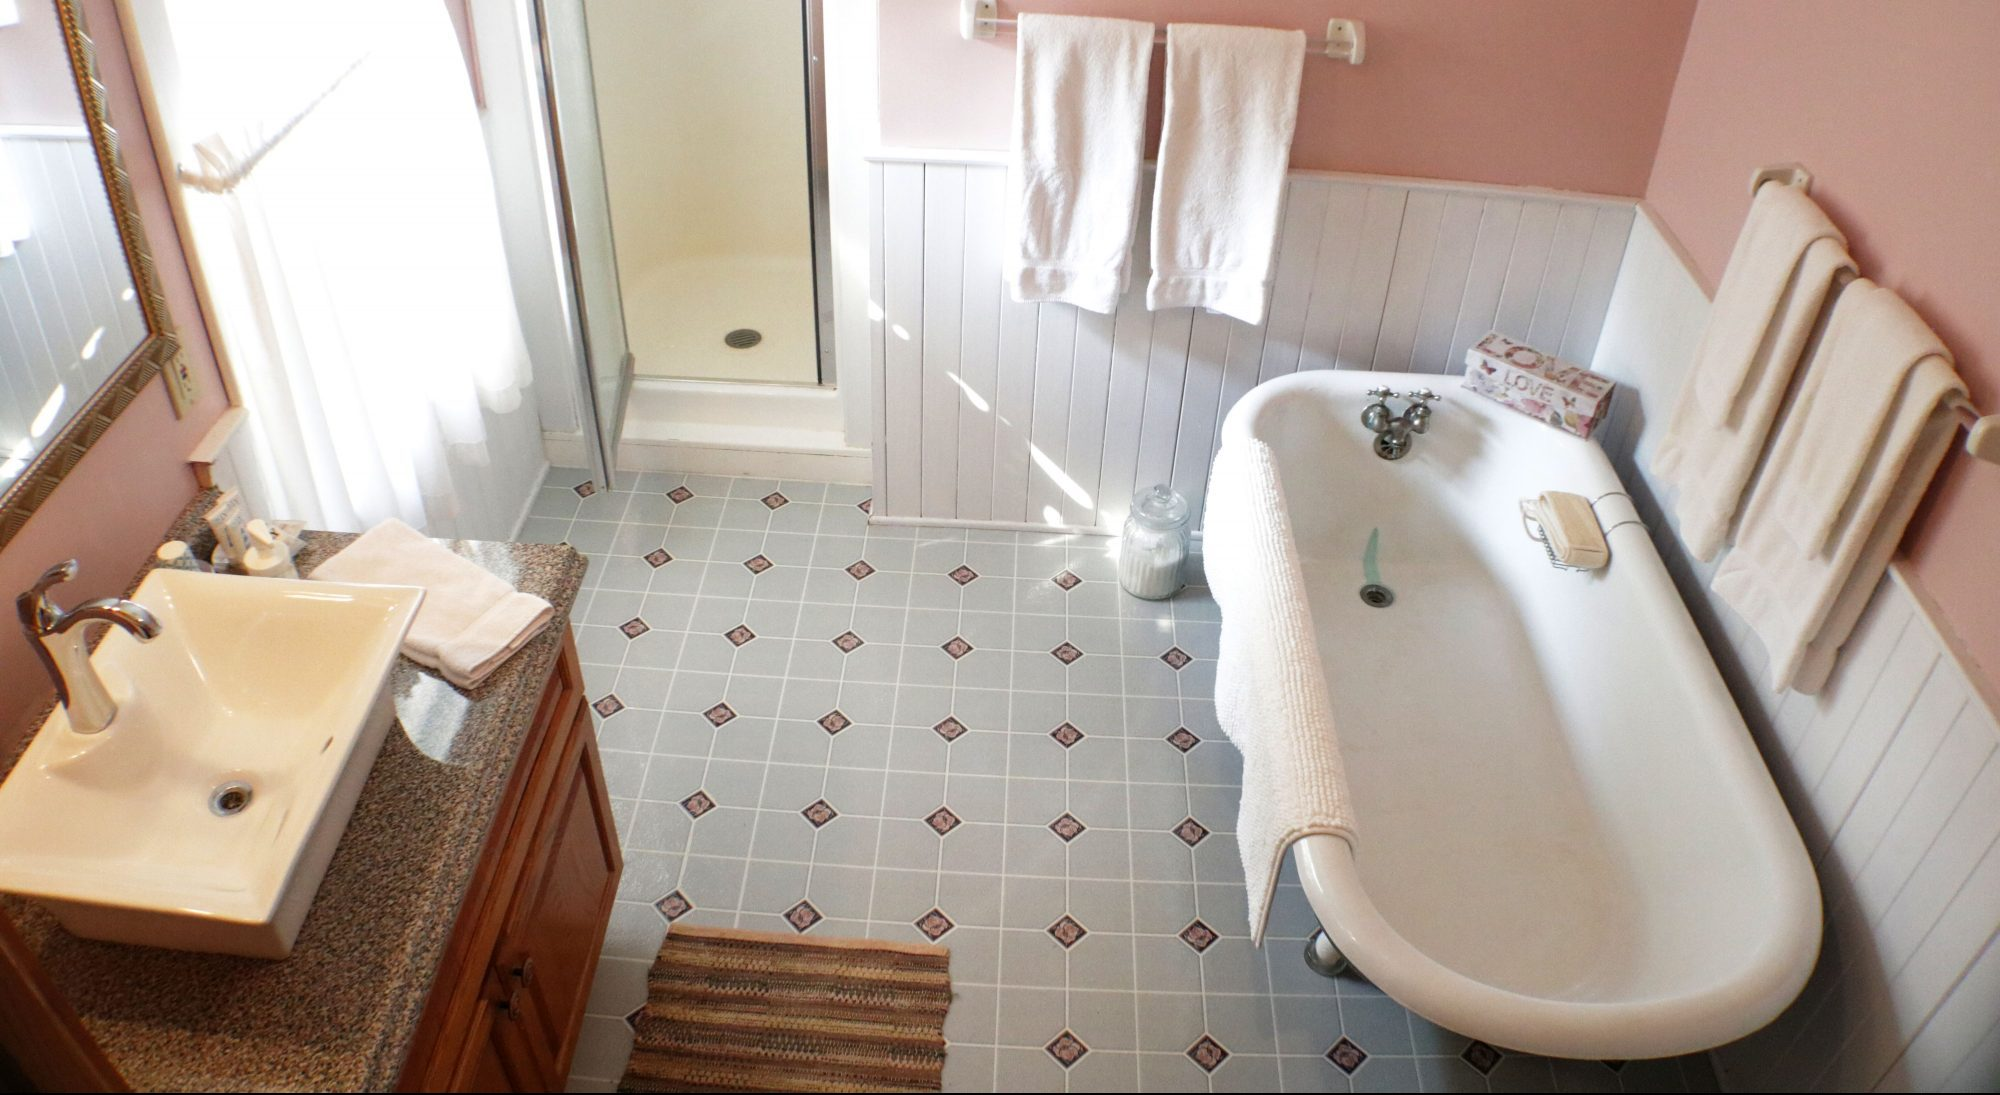 Prince room delux double twin priate bath tub shower